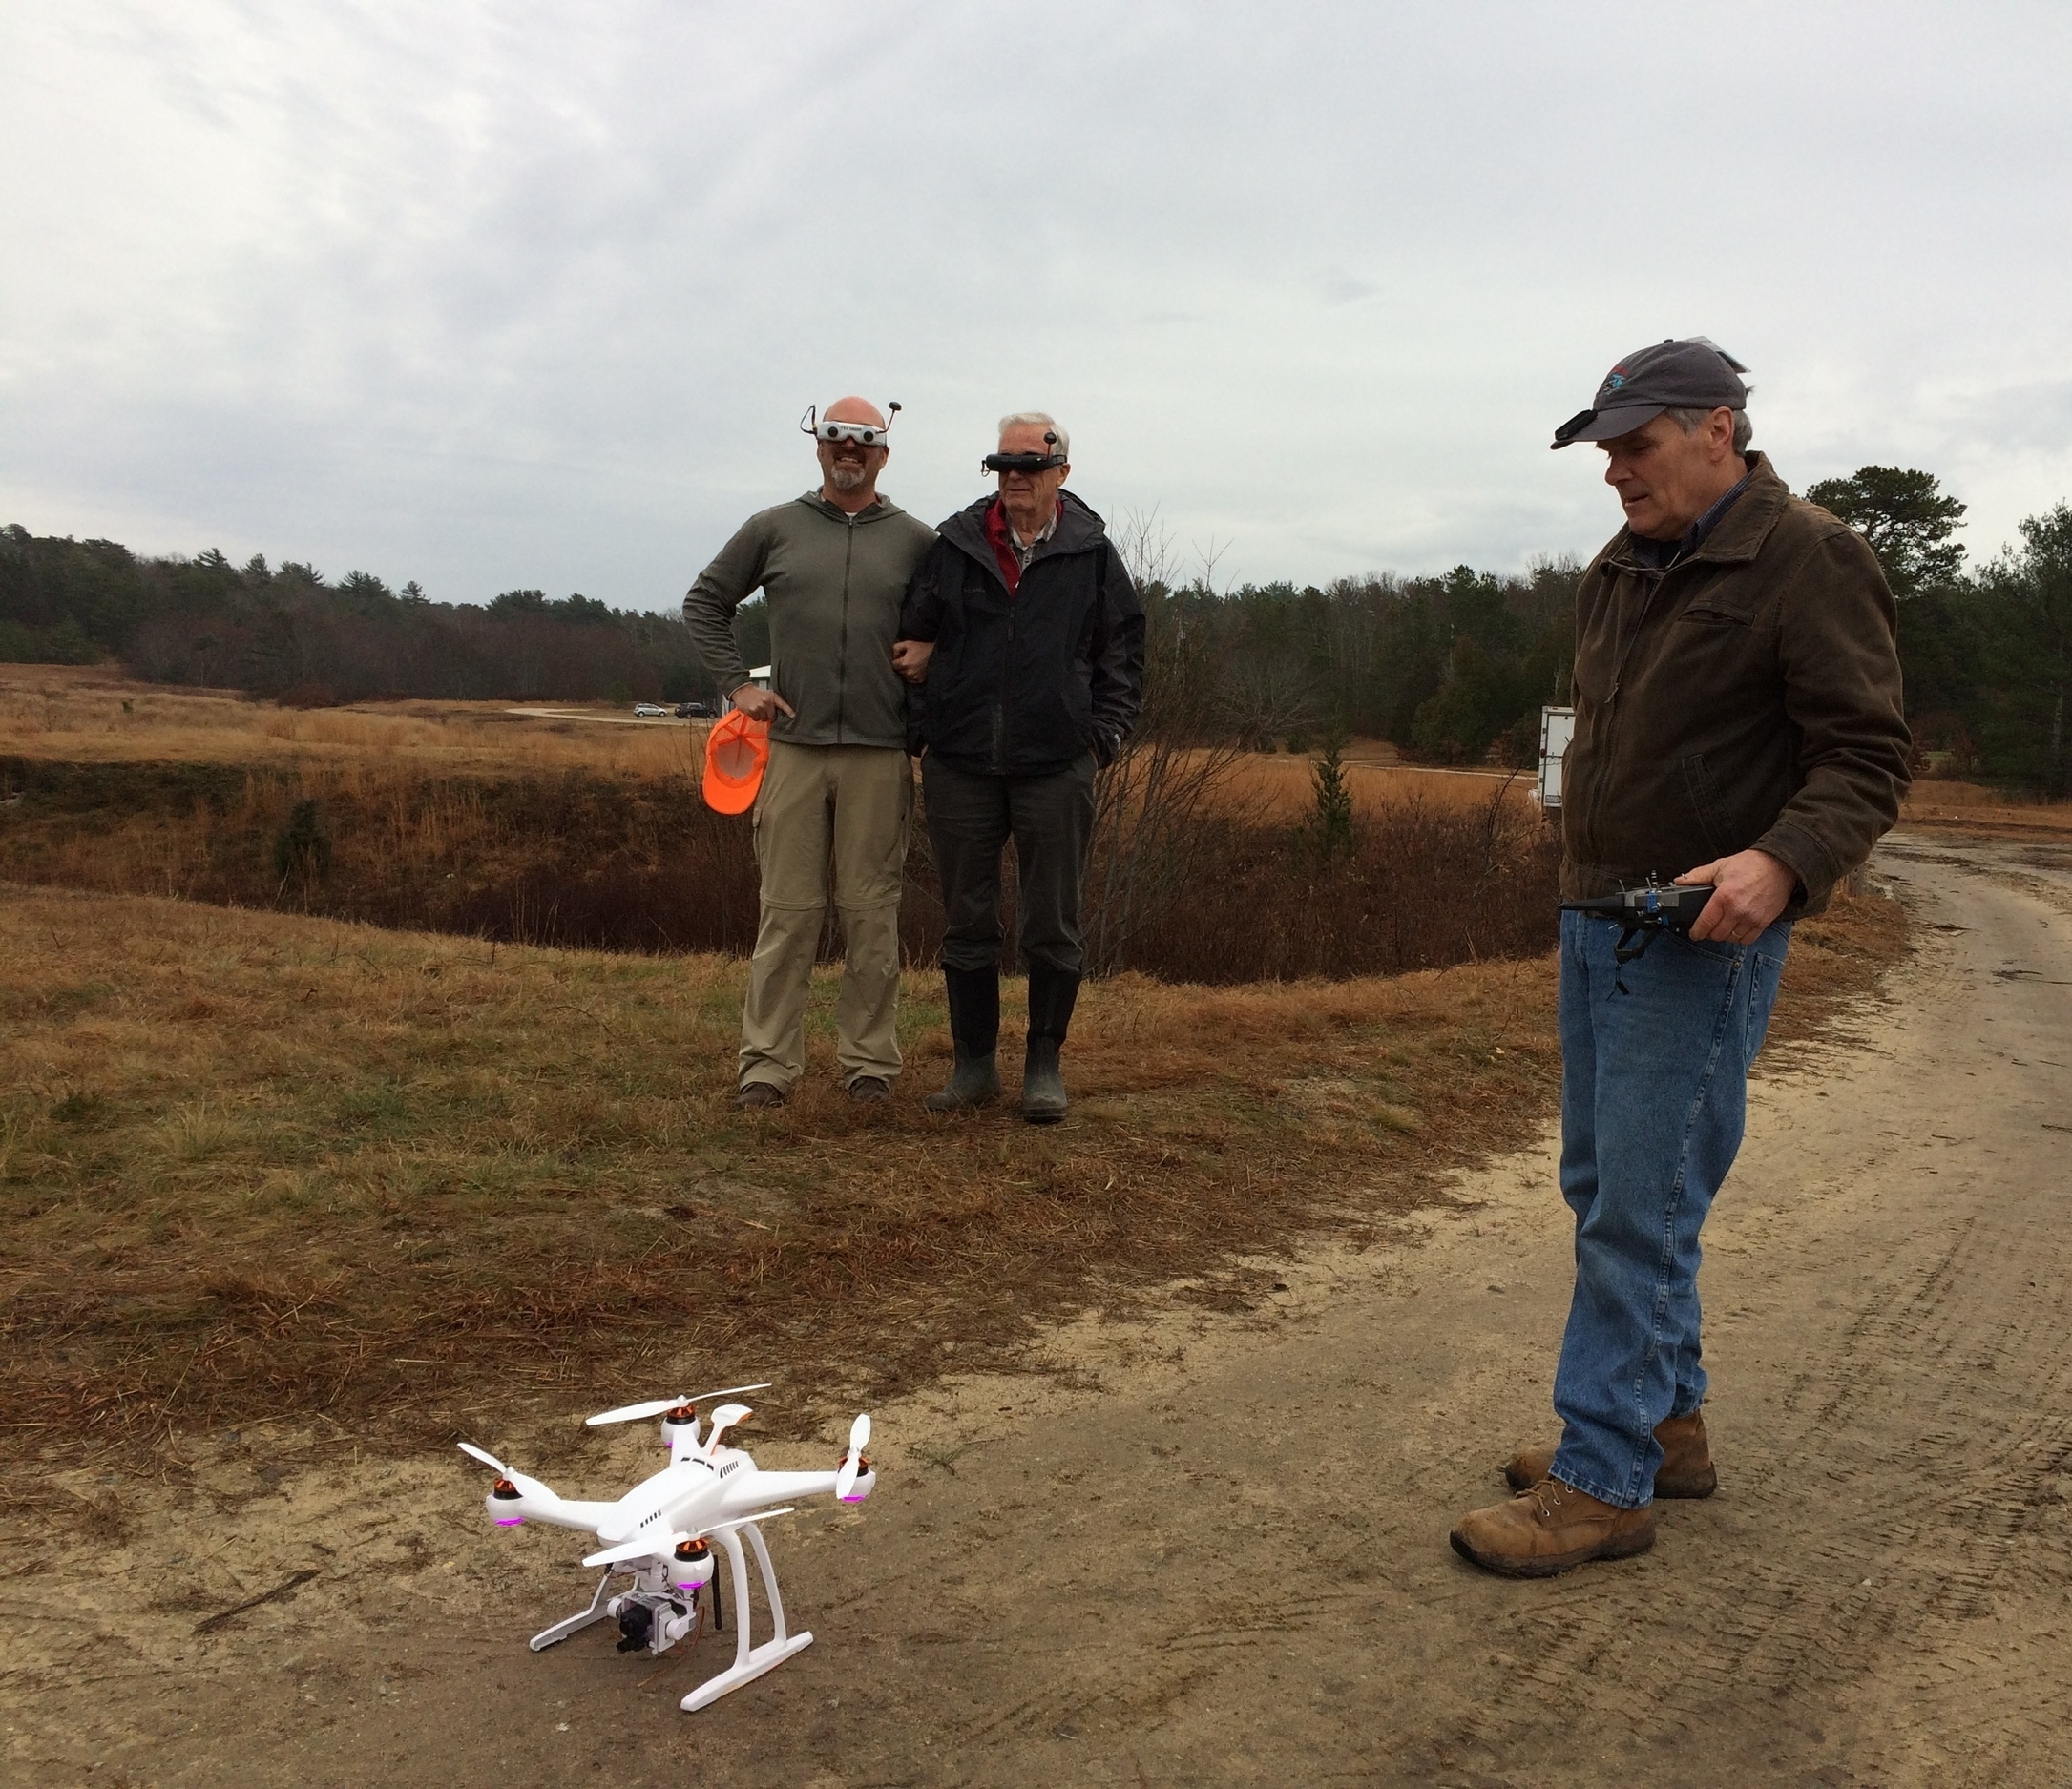 December 22, 2015 | Drones to create a record from above